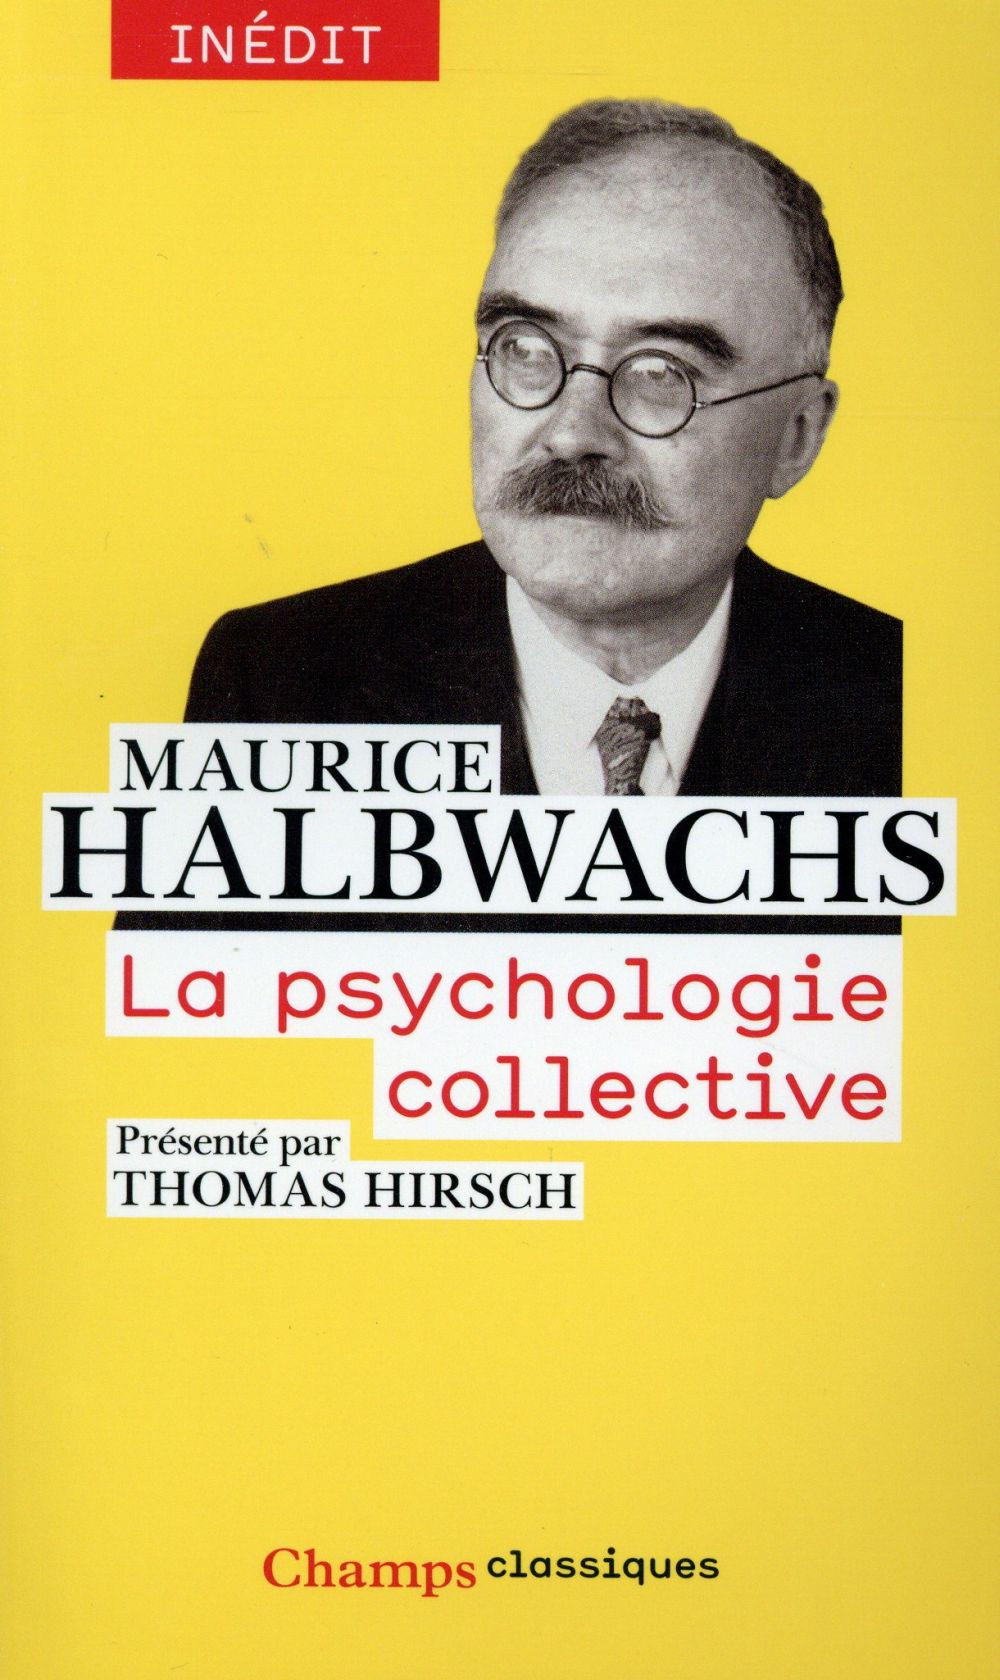 La psychologie collective